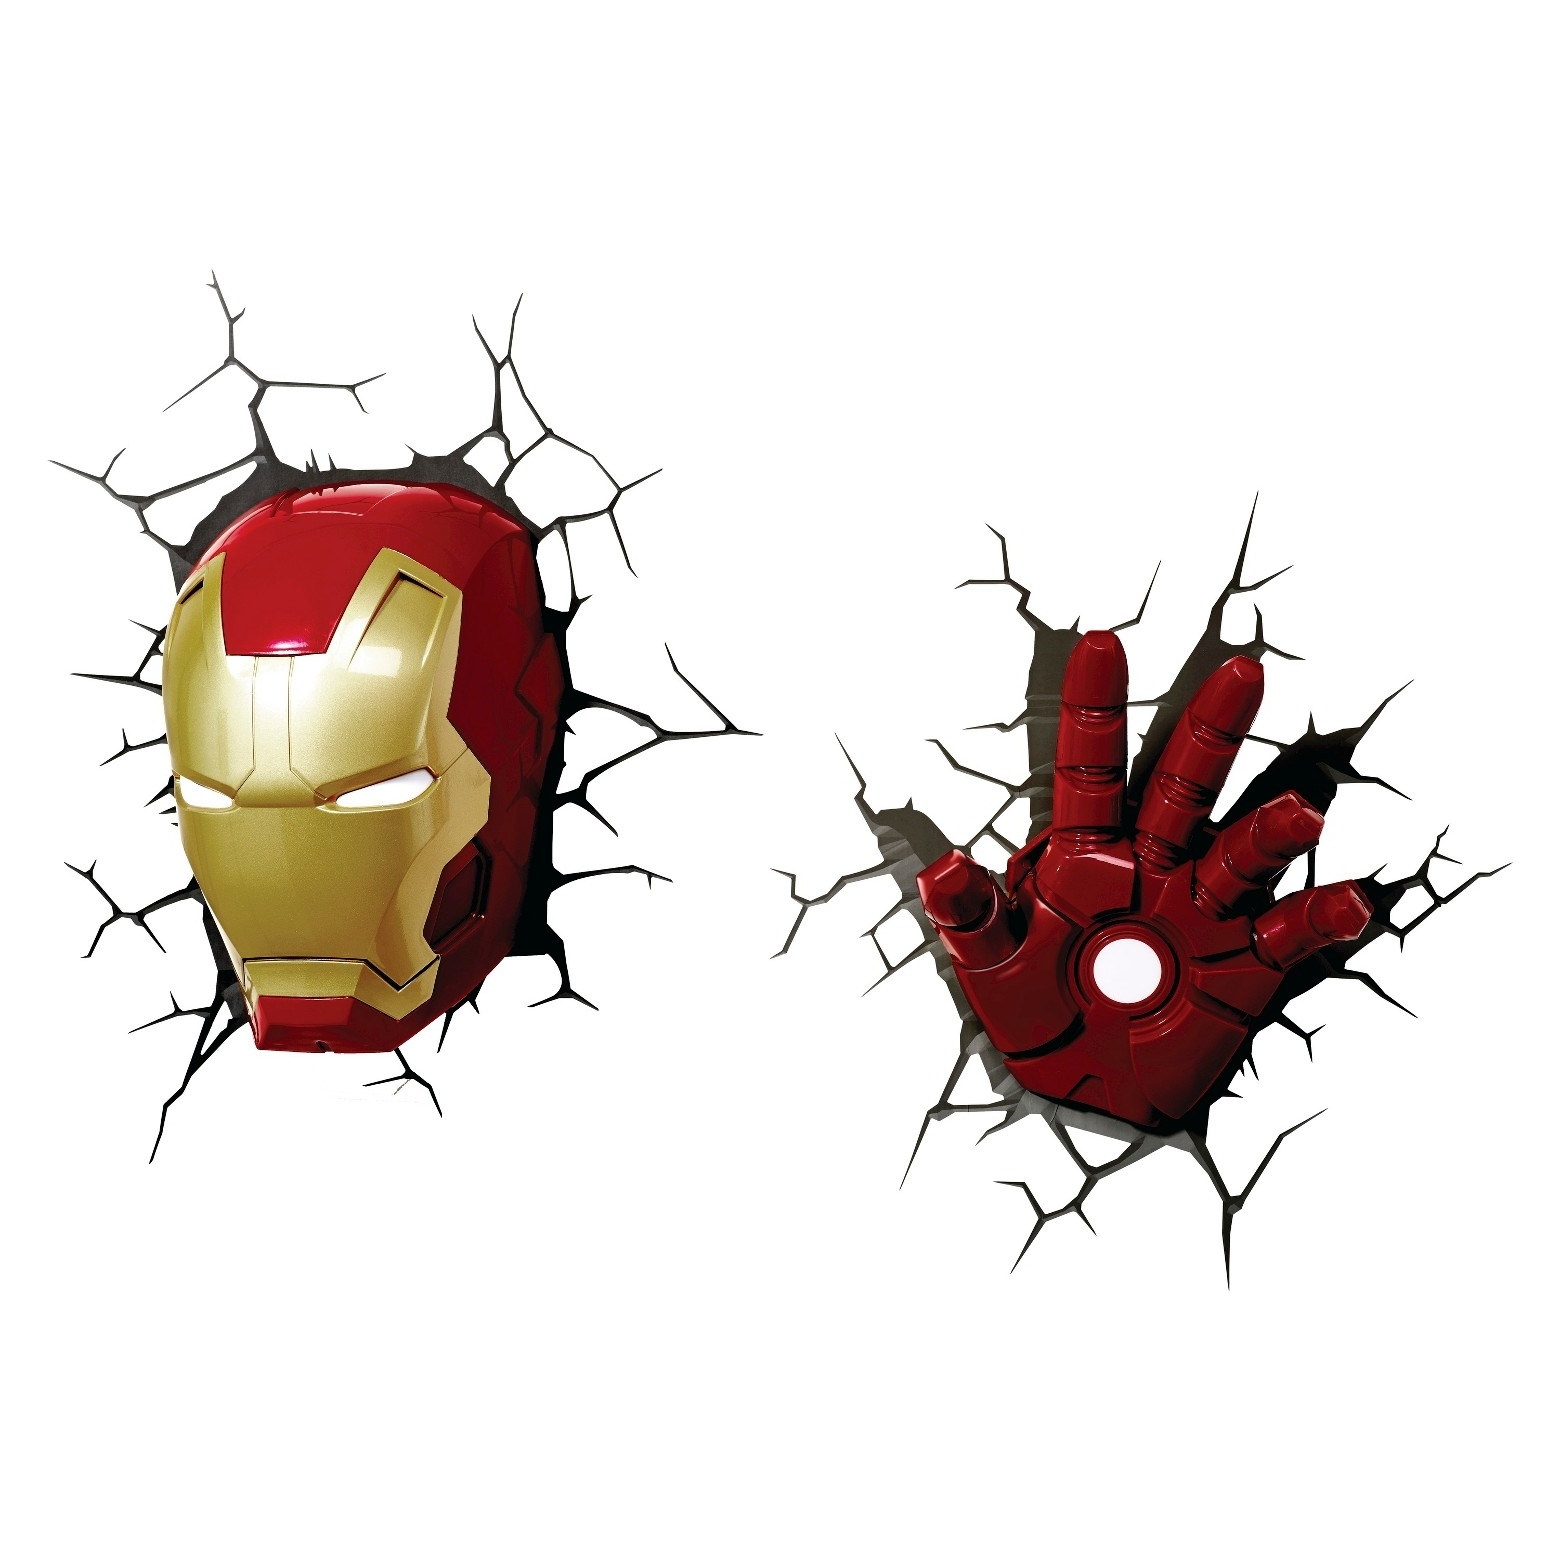 Trendy P><p>chase The Bad Guys Away With The Avengers 3d Wall Art Iron Throughout Iron Man 3d Wall Art (View 8 of 15)